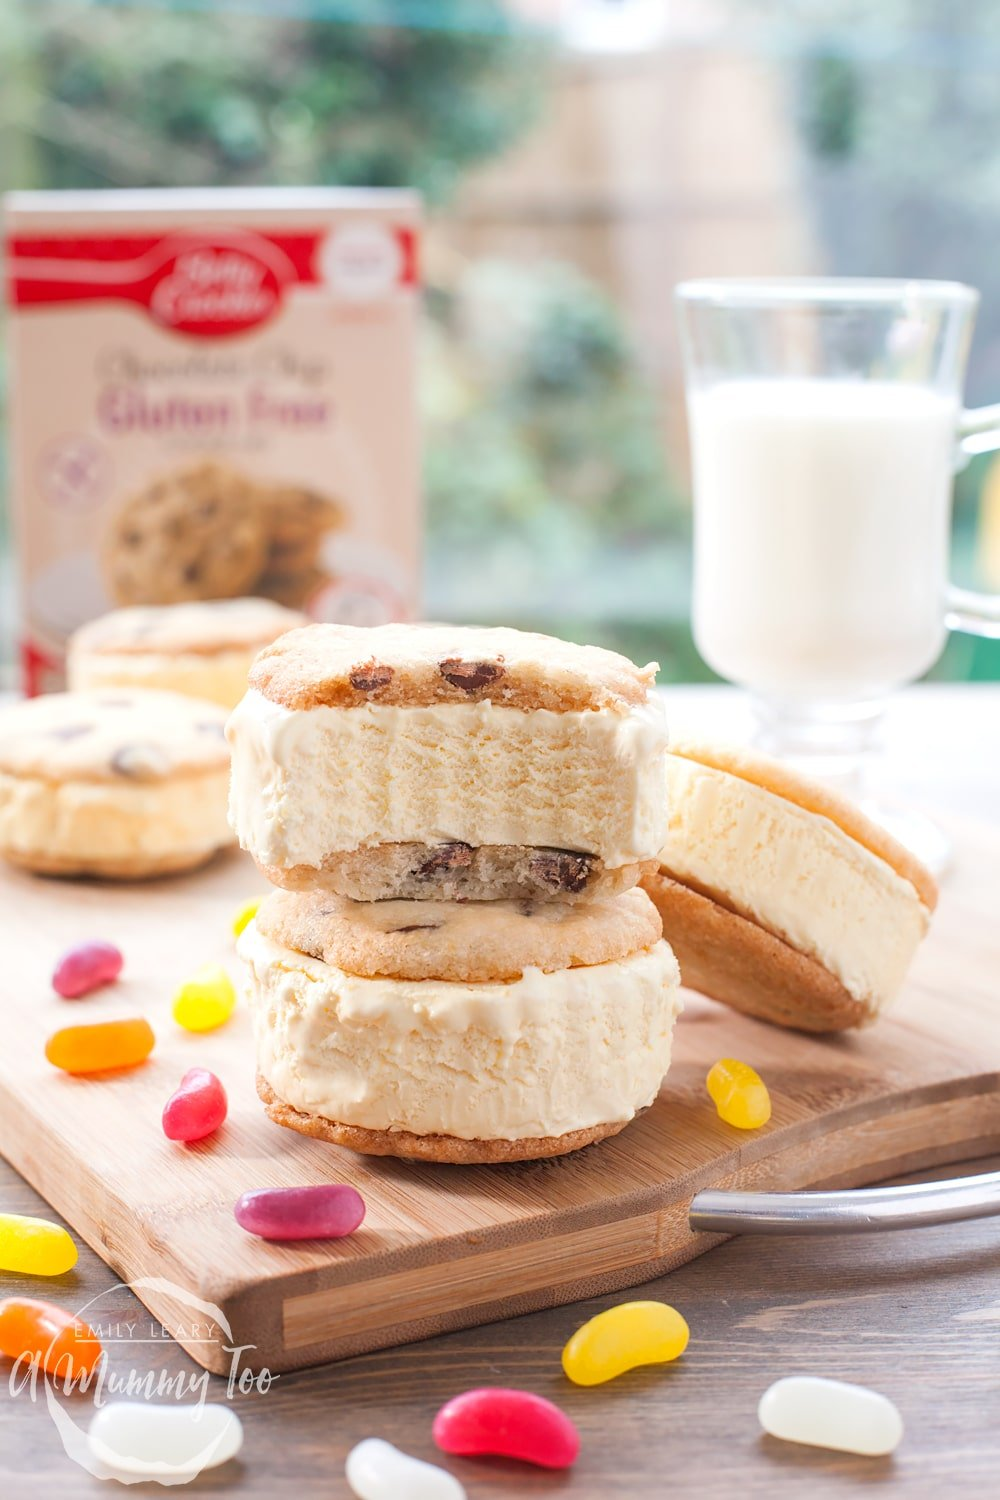 Serve your gluten-free ice cream sandwiches and enjoy straight away!